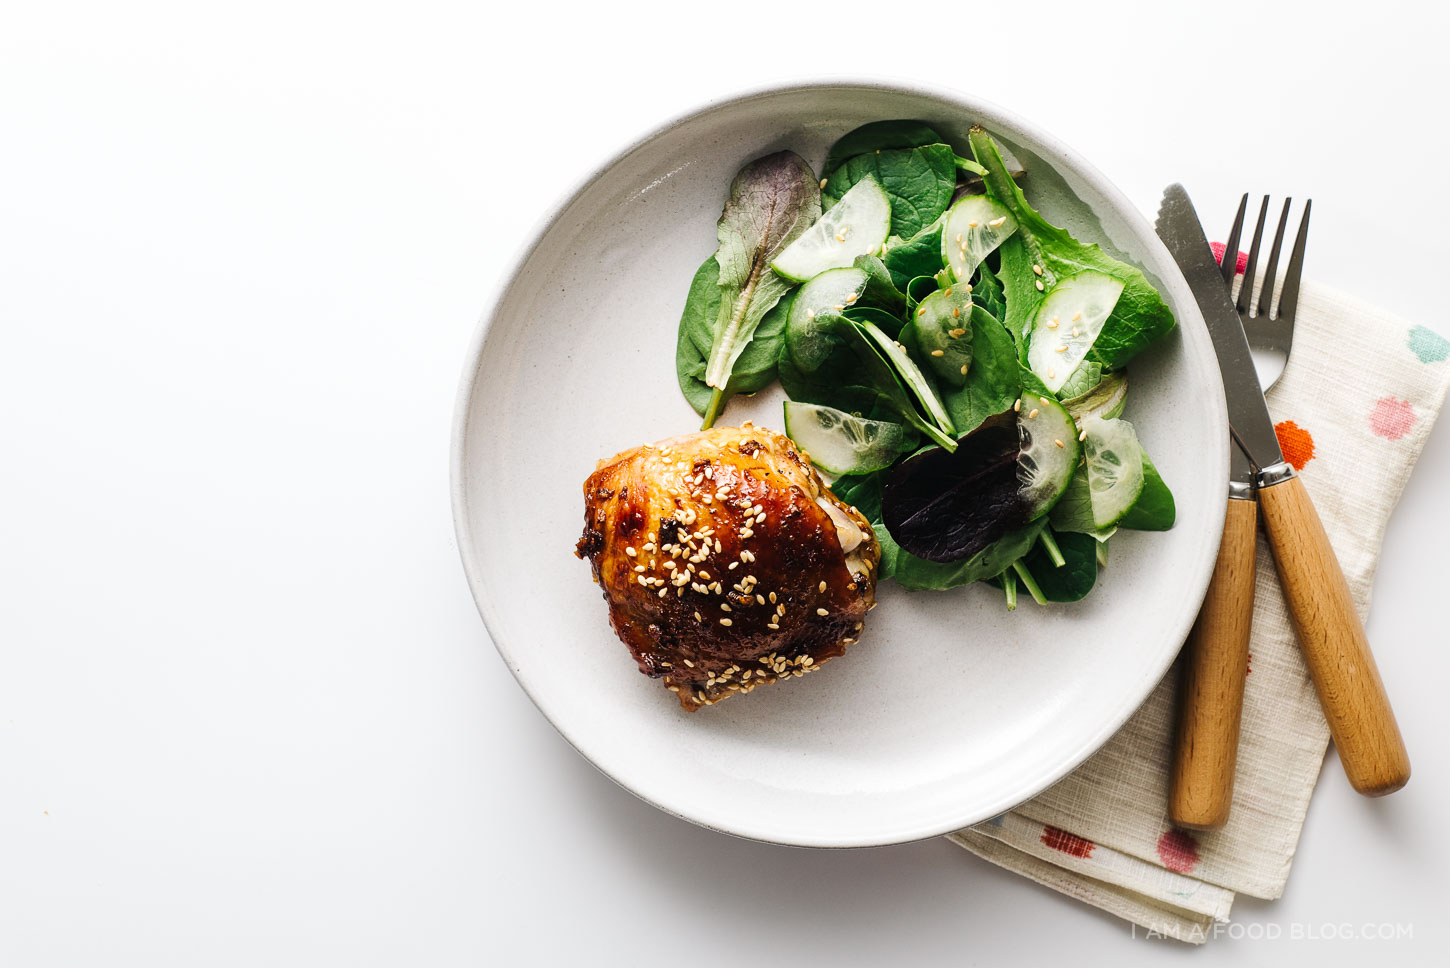 baked sesame chicken thigh recipe - www.iamafoodblog.com